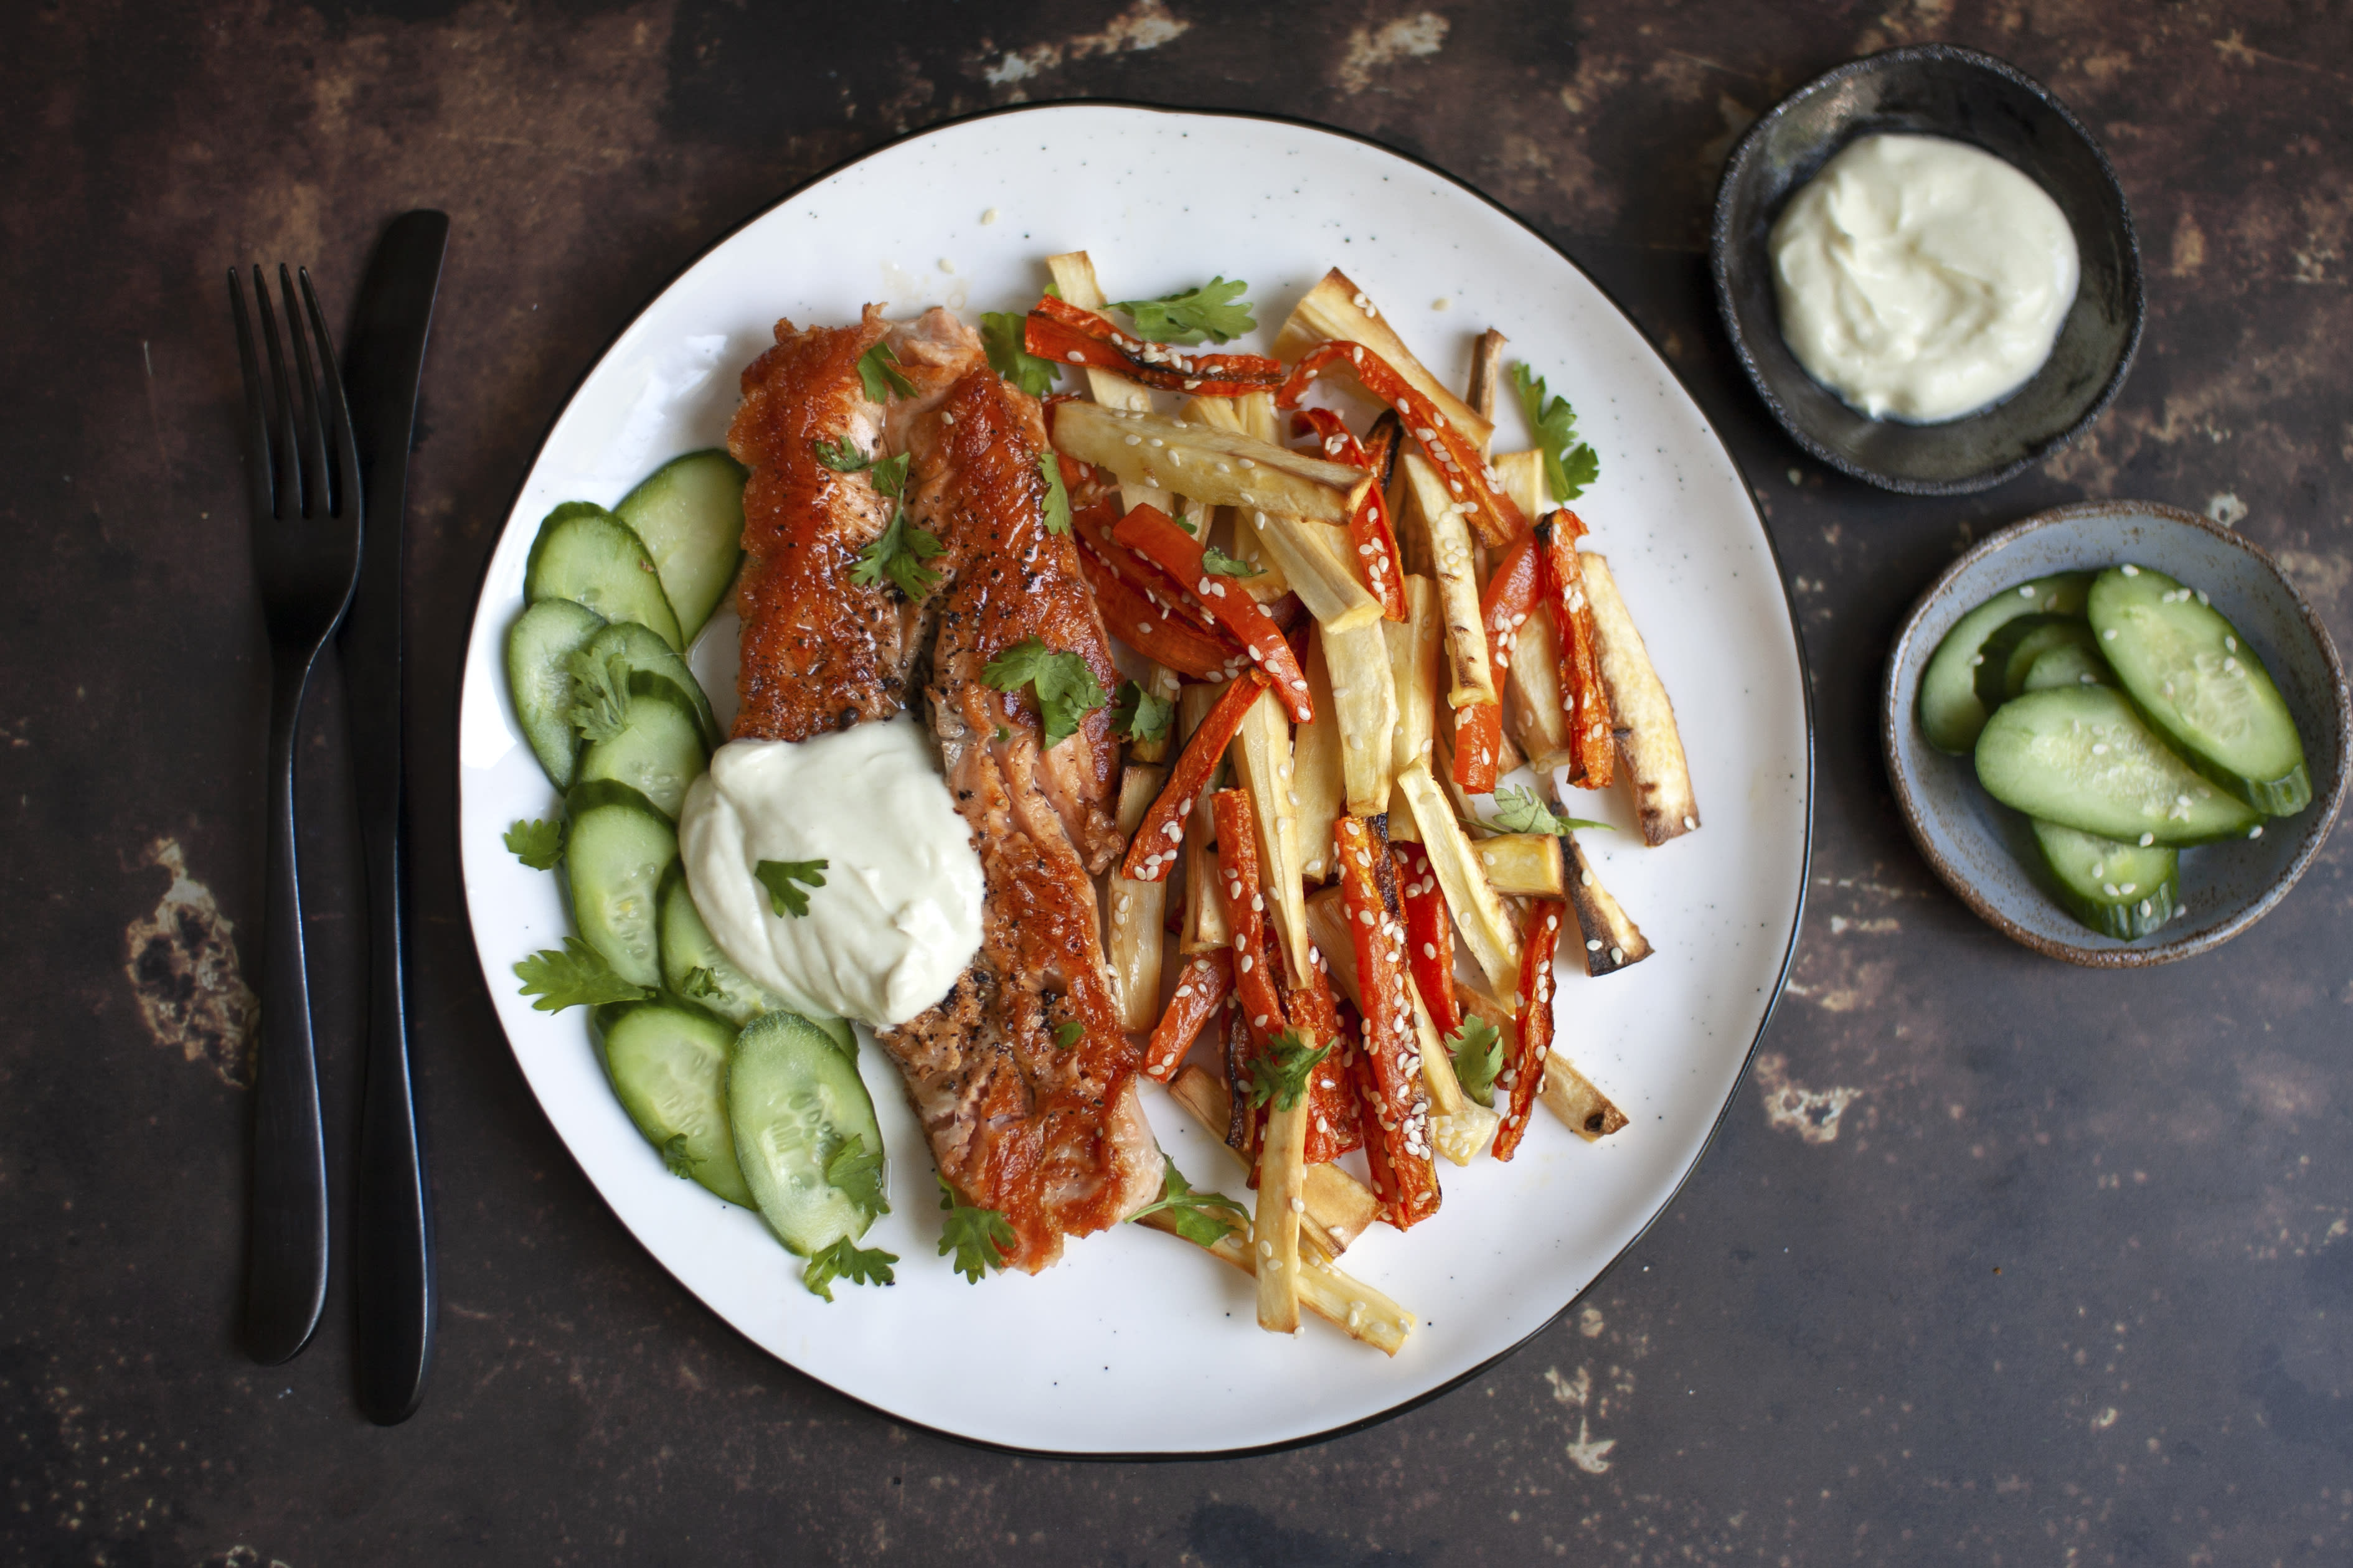 Crispy Salmon with Wasabi Cream and Sesame Vegetables